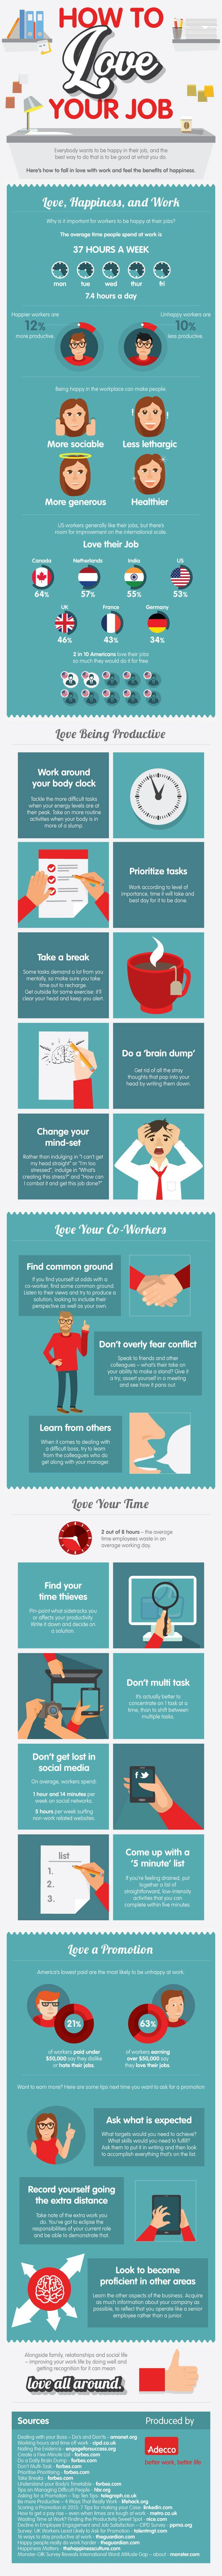 Find a job your love and never work a day in your life! Here's how to be happier at work and enjoy what you do.